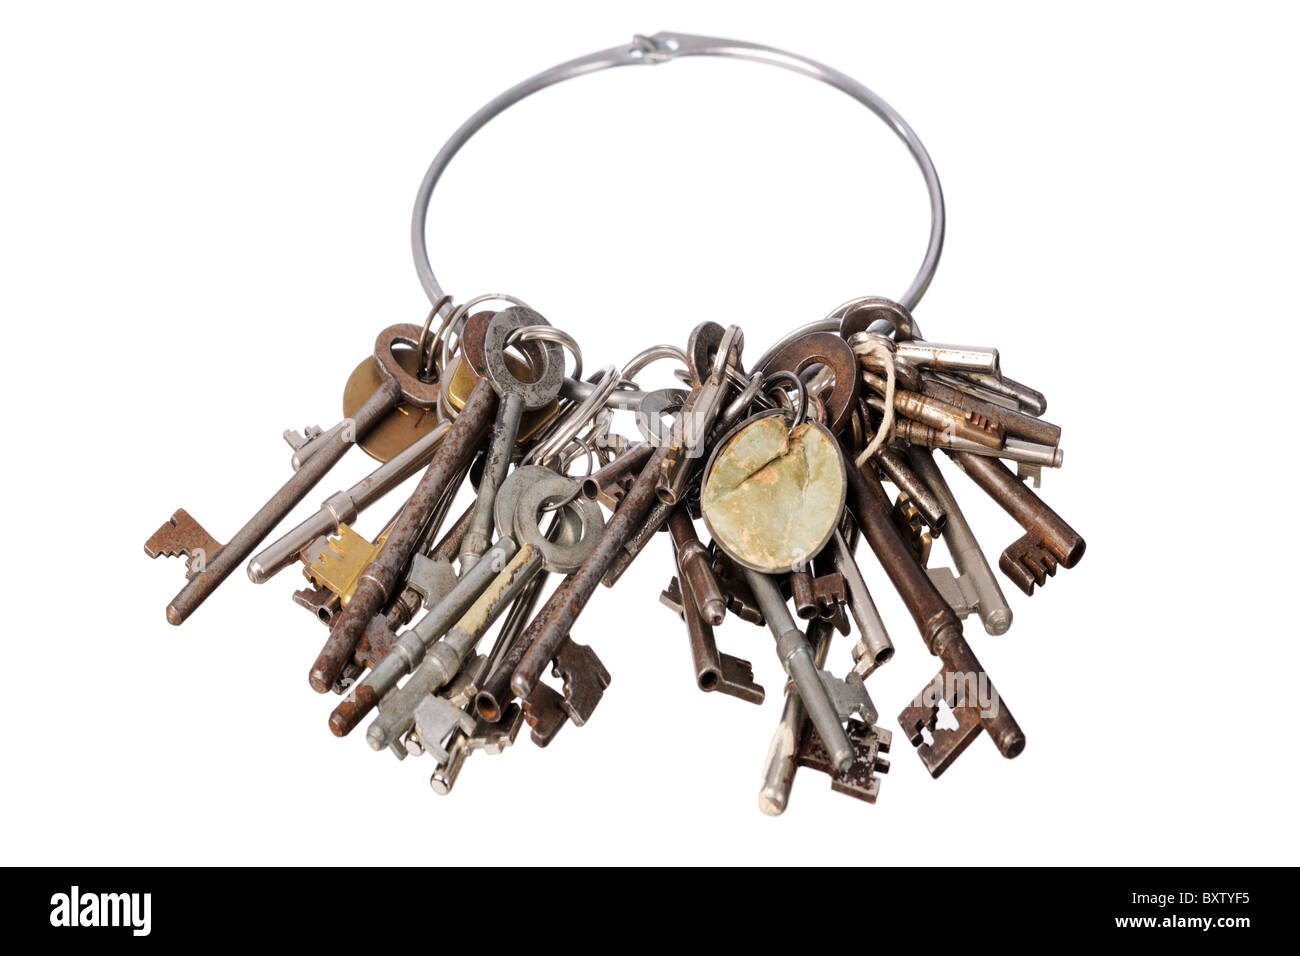 bunch of rusty old keys - Stock Image